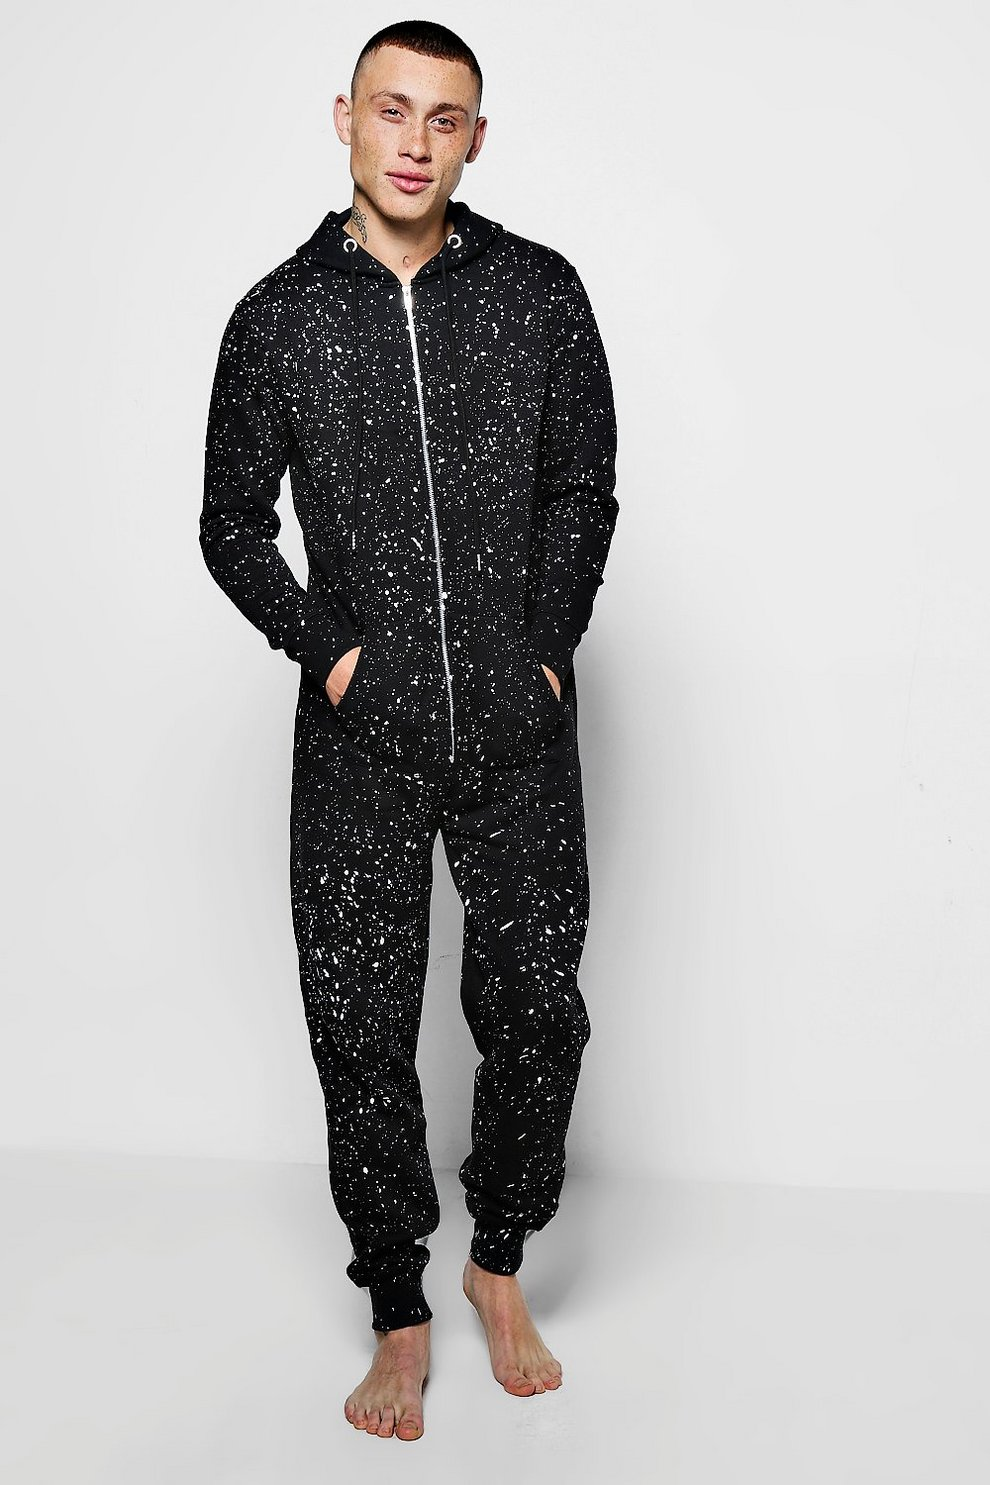 Mens stylish onesie advise to wear for on every day in 2019